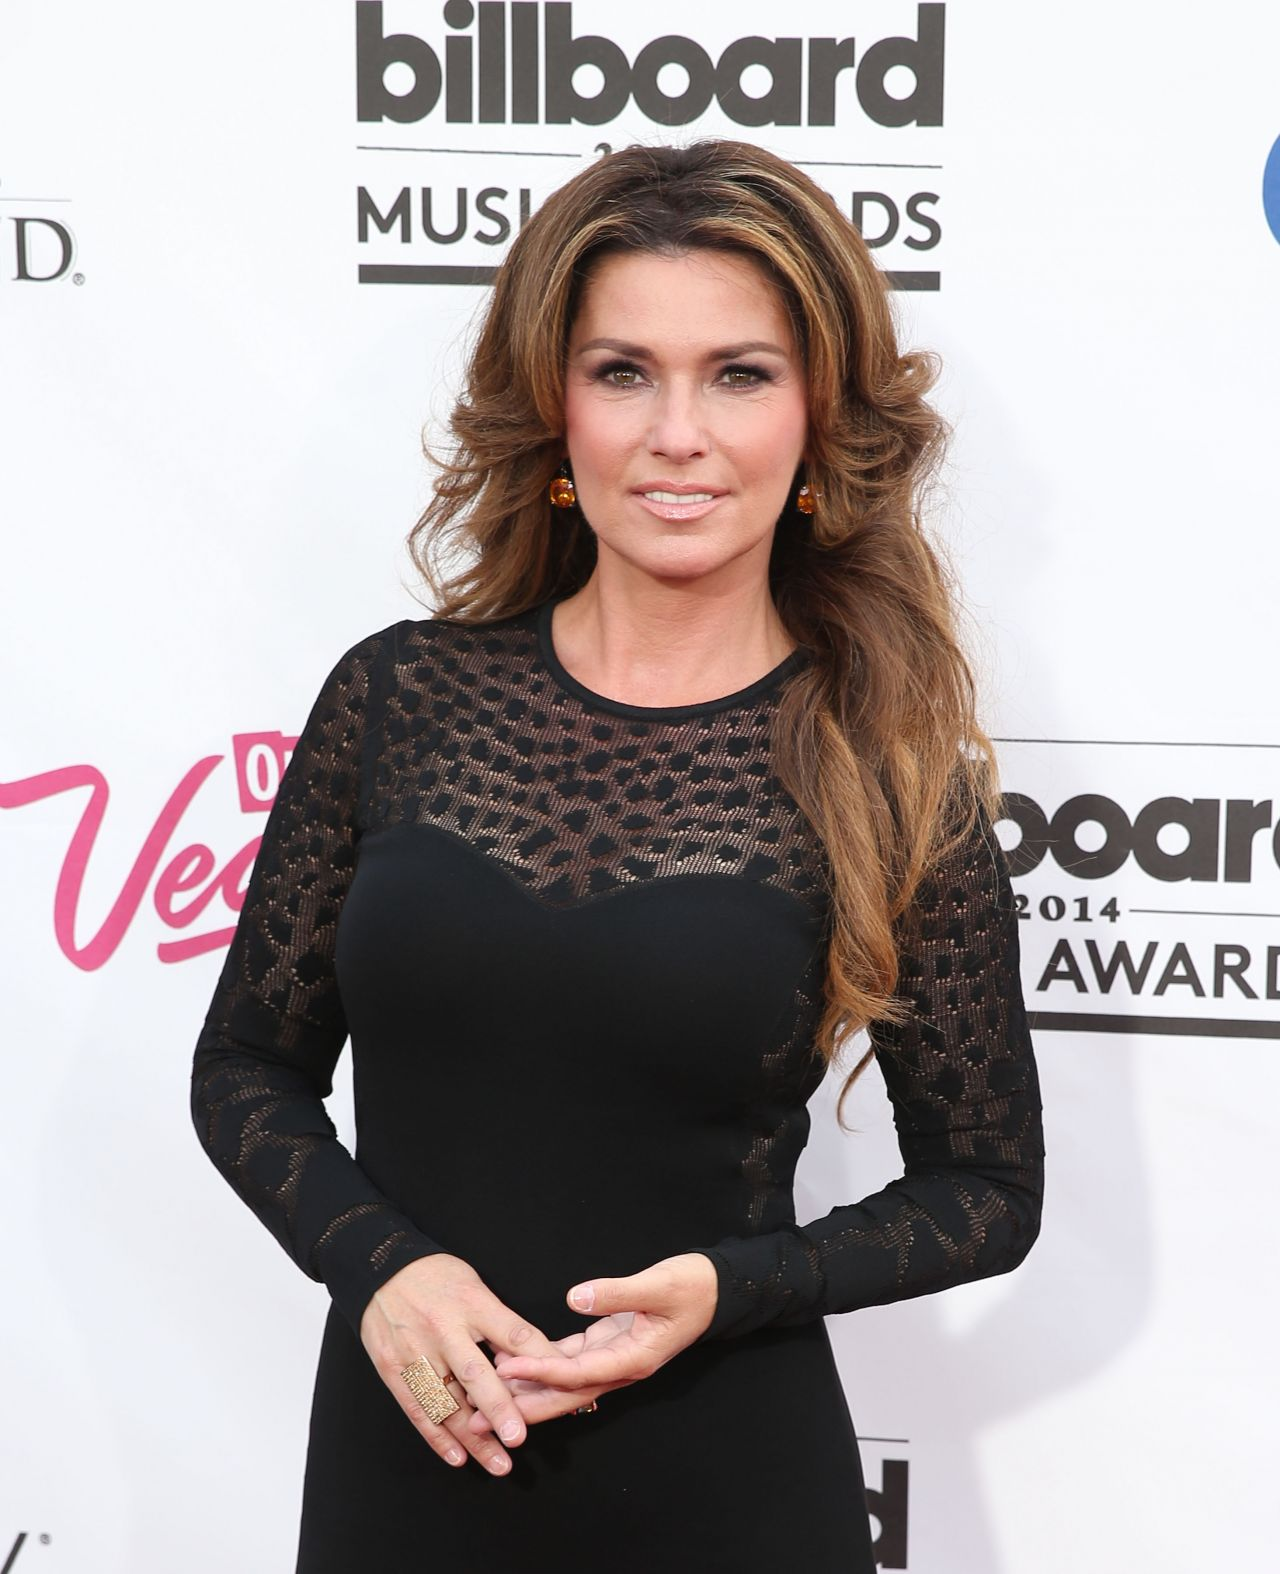 Shania Twain - 2014 Billboard Music Awards in Las Vegas